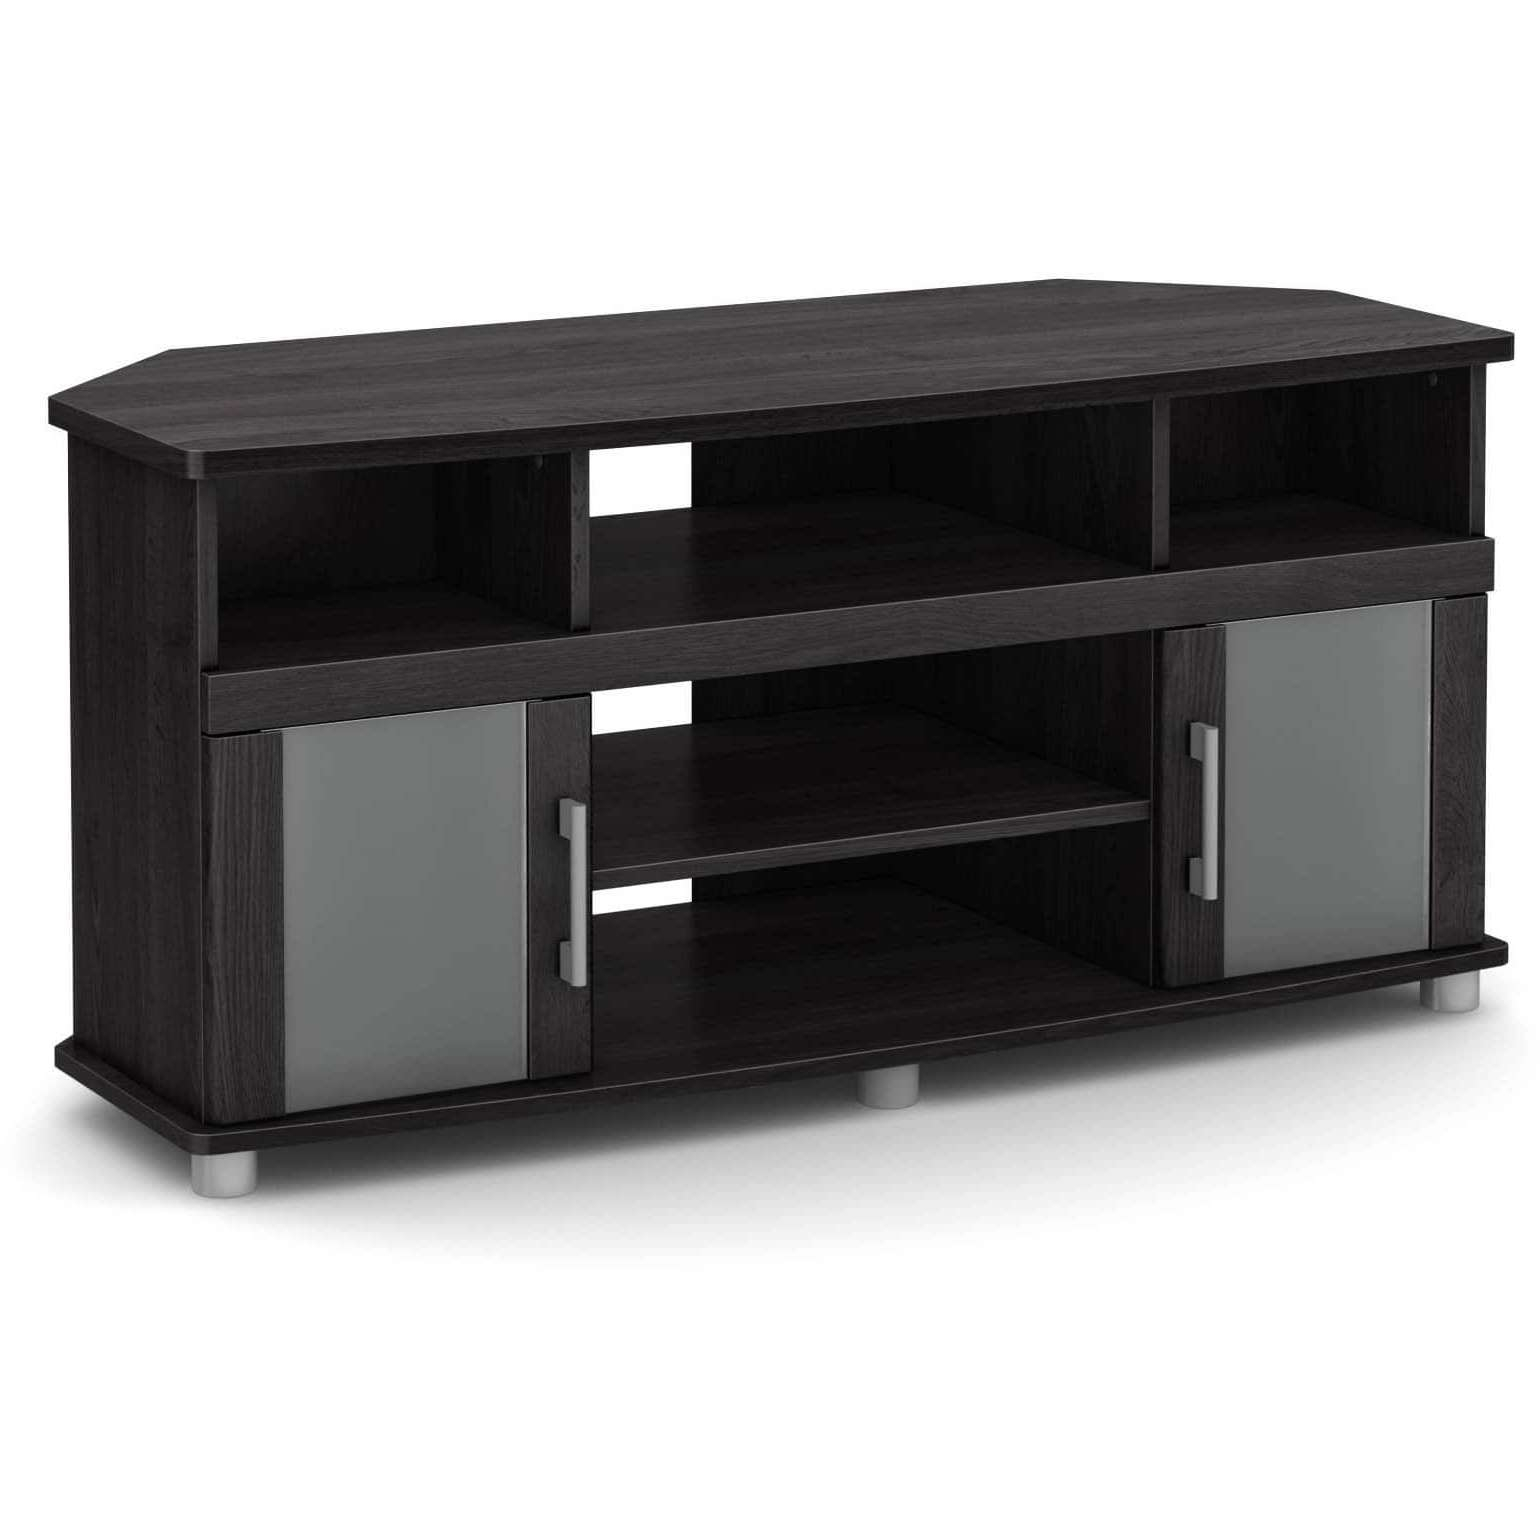 South Shore City Life Corner Tv Stand | Ebay Inside Grey Corner Tv Stands (View 14 of 20)